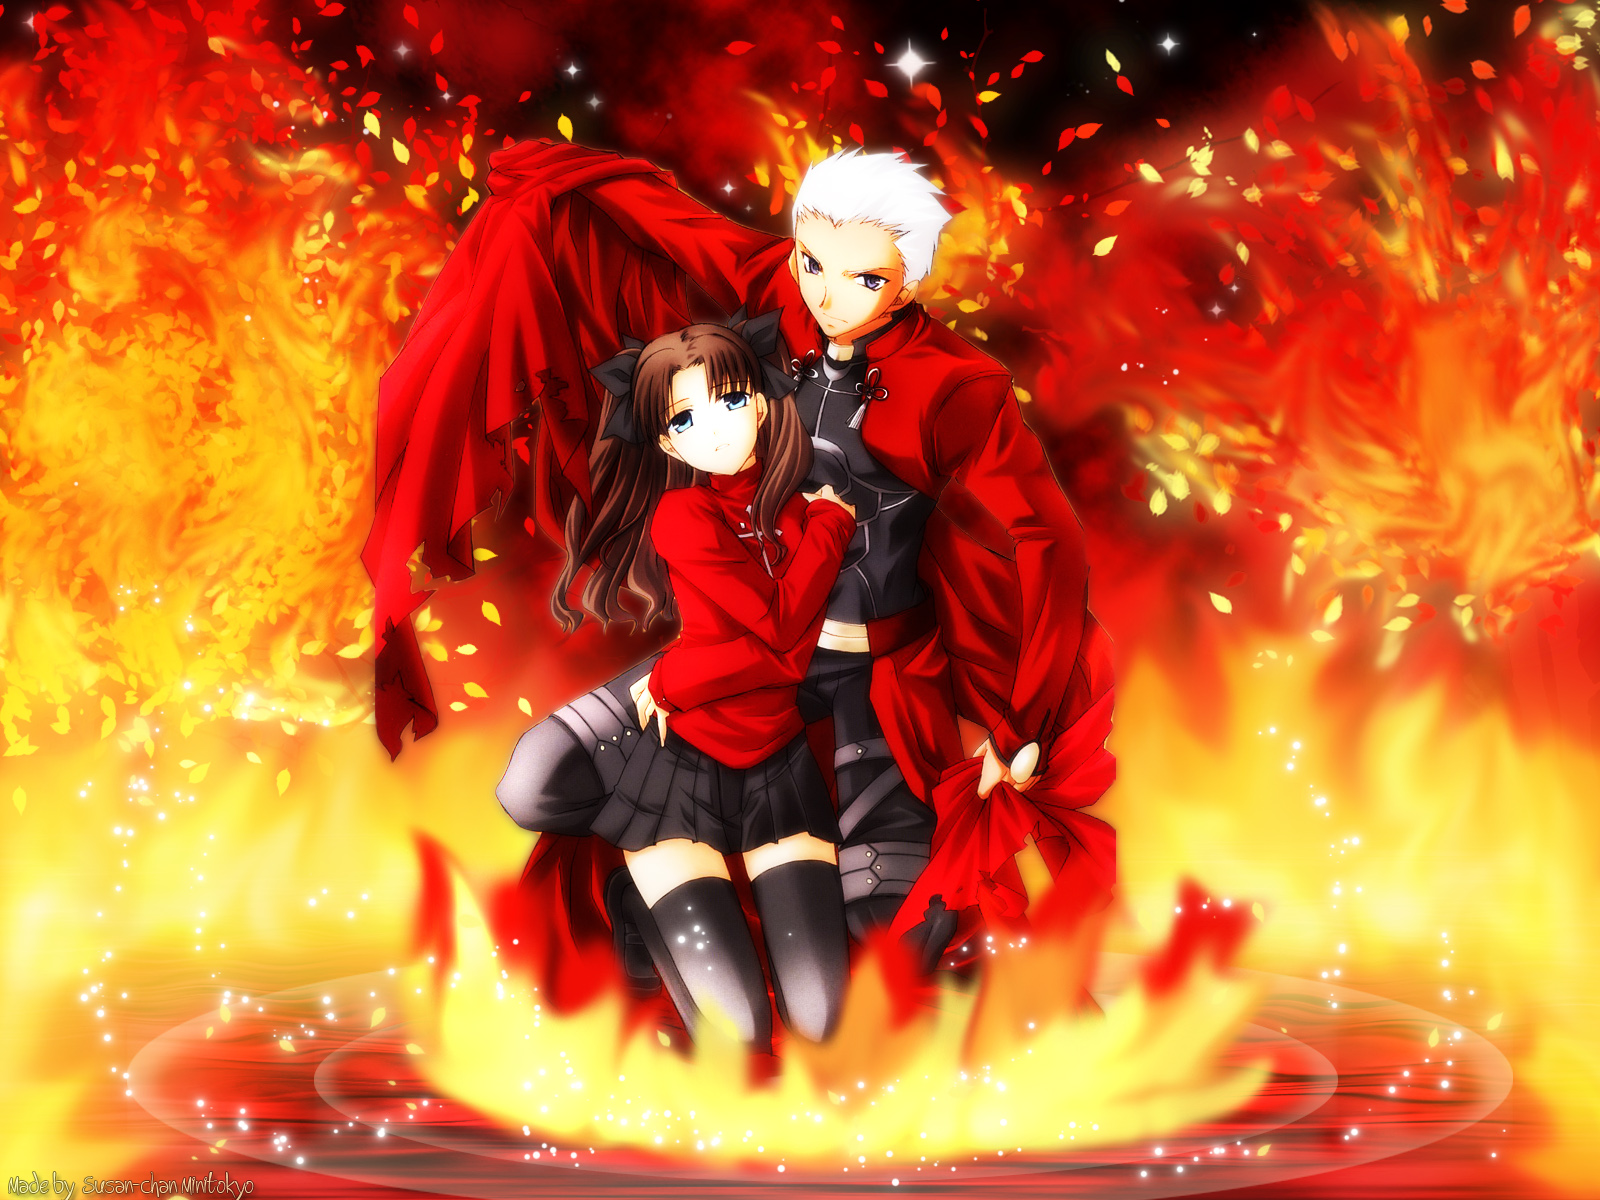 Anime - Fate/Stay Night  - Fate Stay Night - Archer - Rin Tohsaka Wallpaper